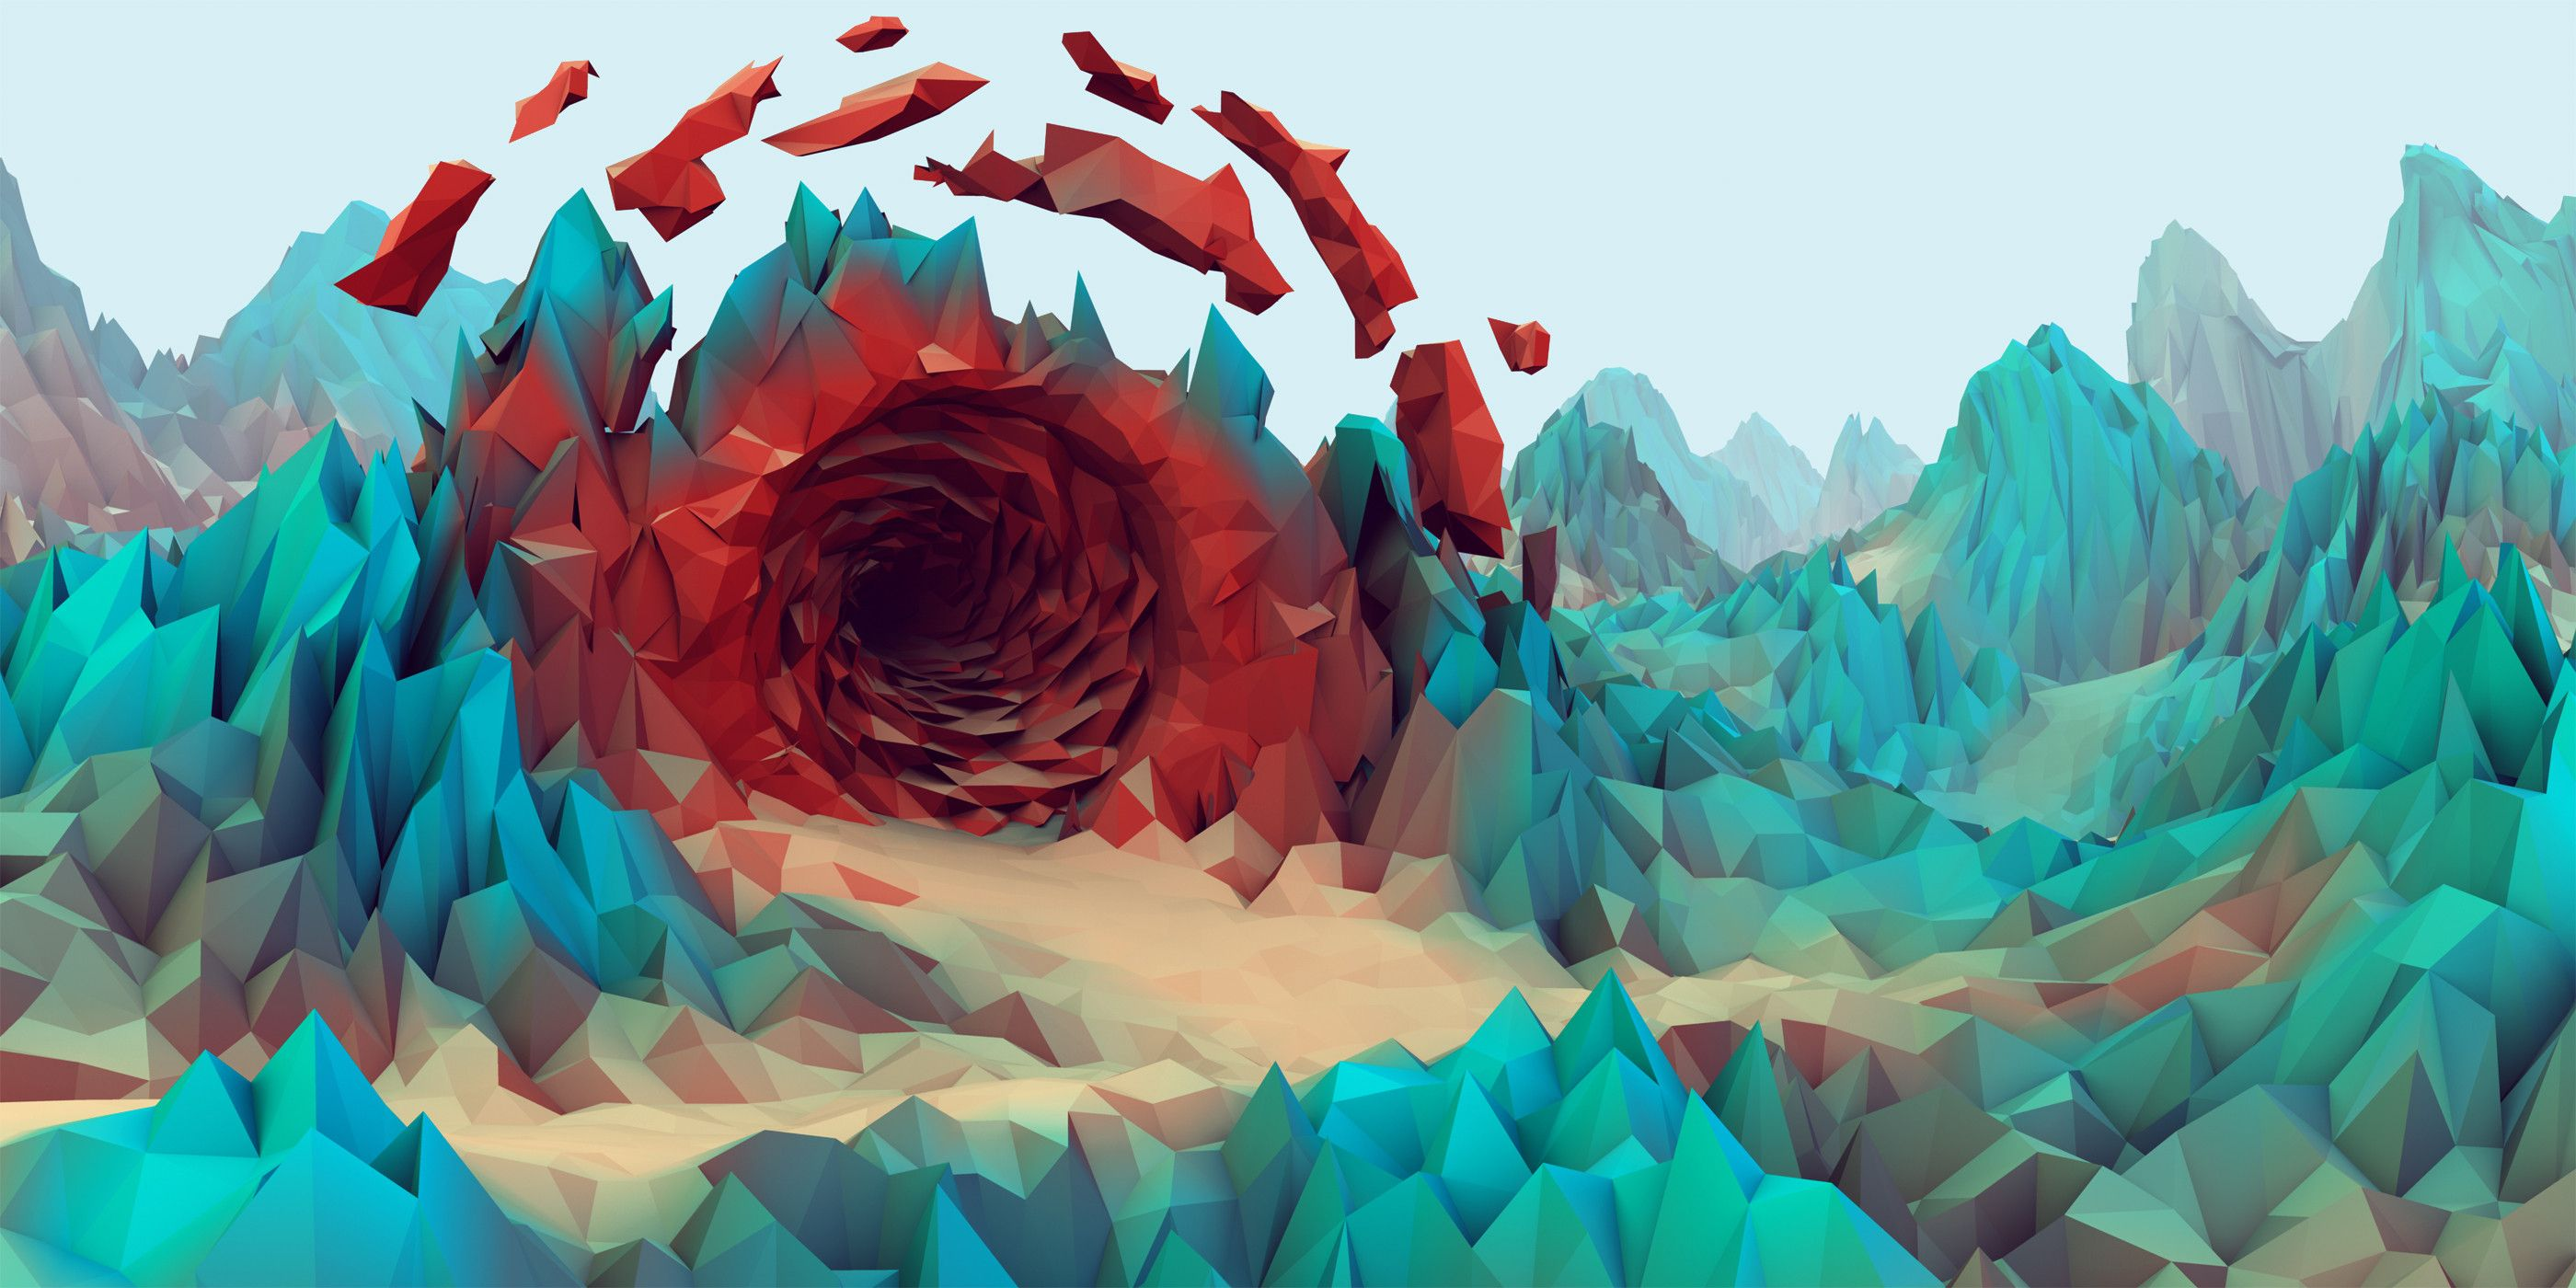 Low Poly Wallpapers Low Poly Art Polygon Art Low Poly